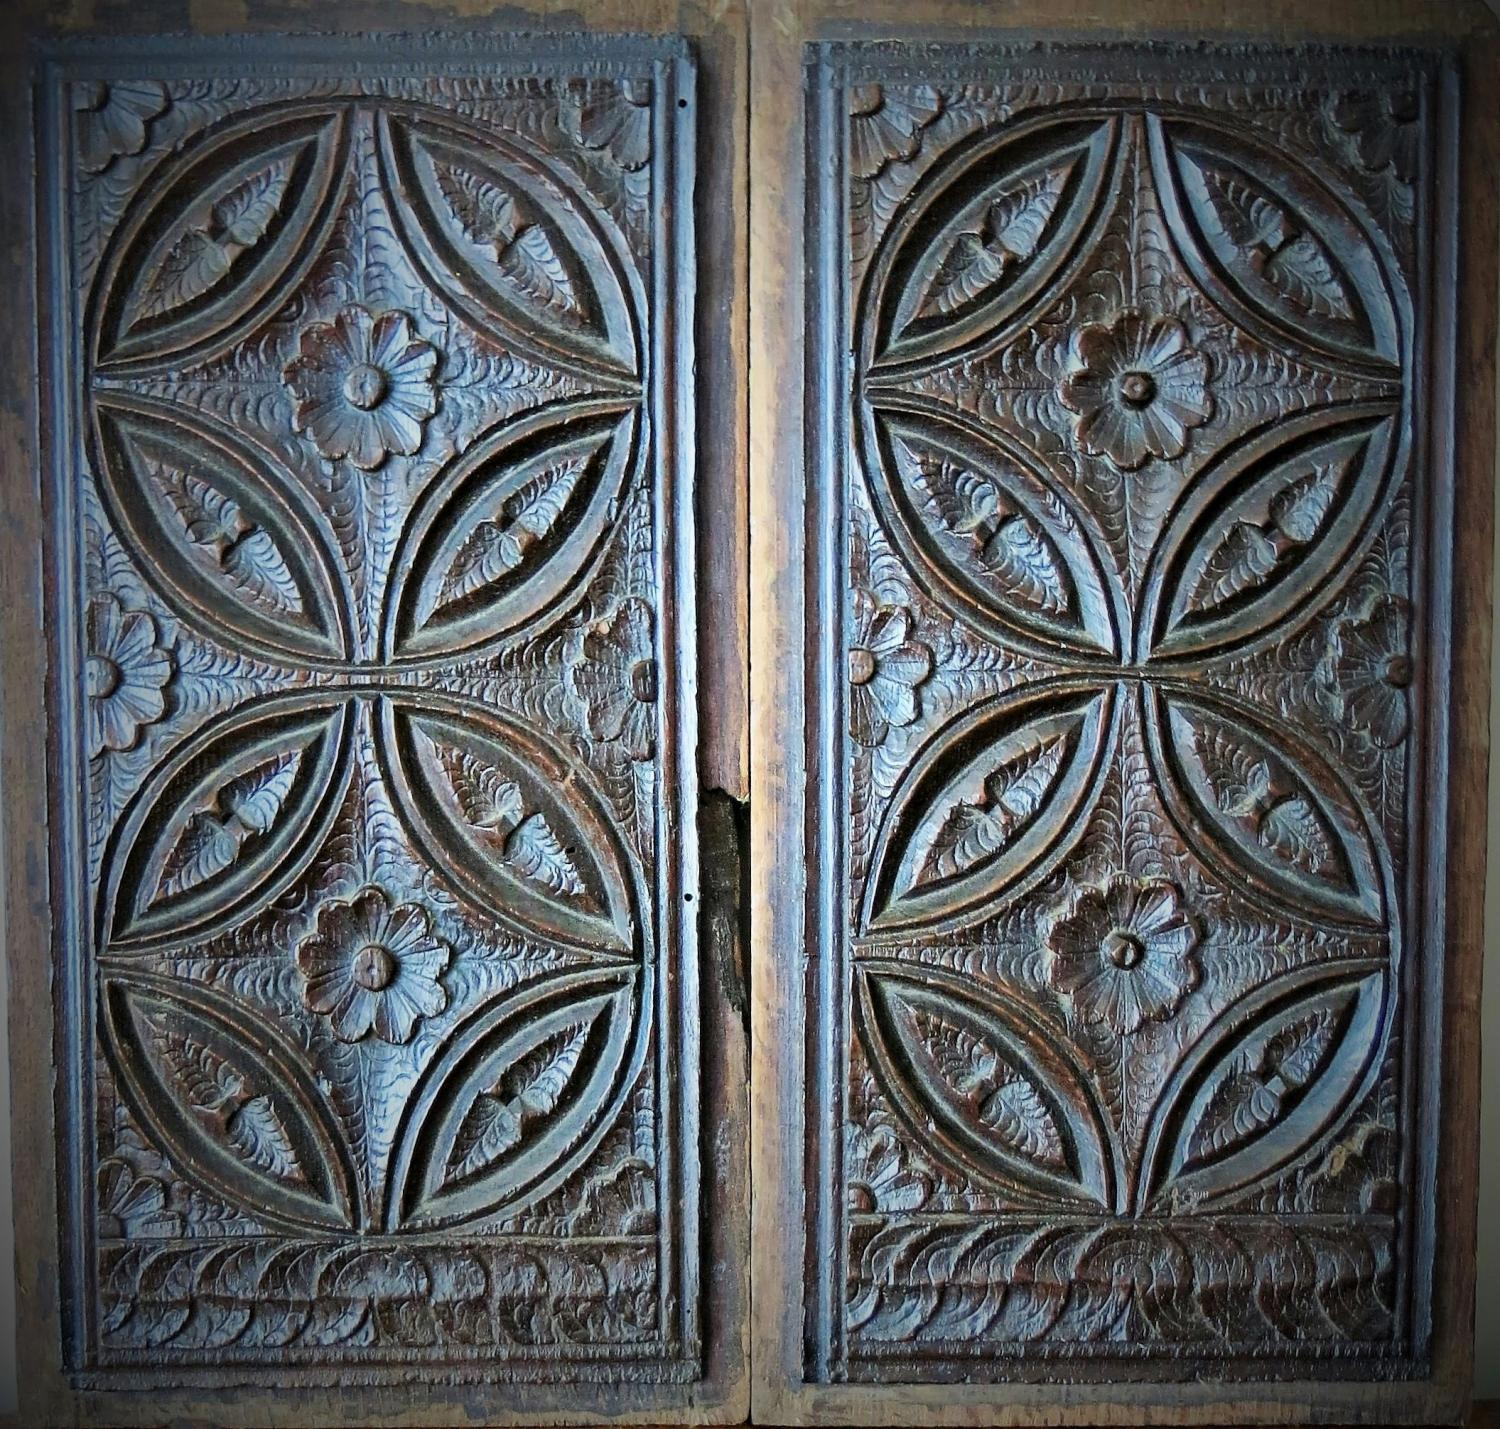 Gothic Oak Tracery Panels 16th Century - Carvings / Sculptures